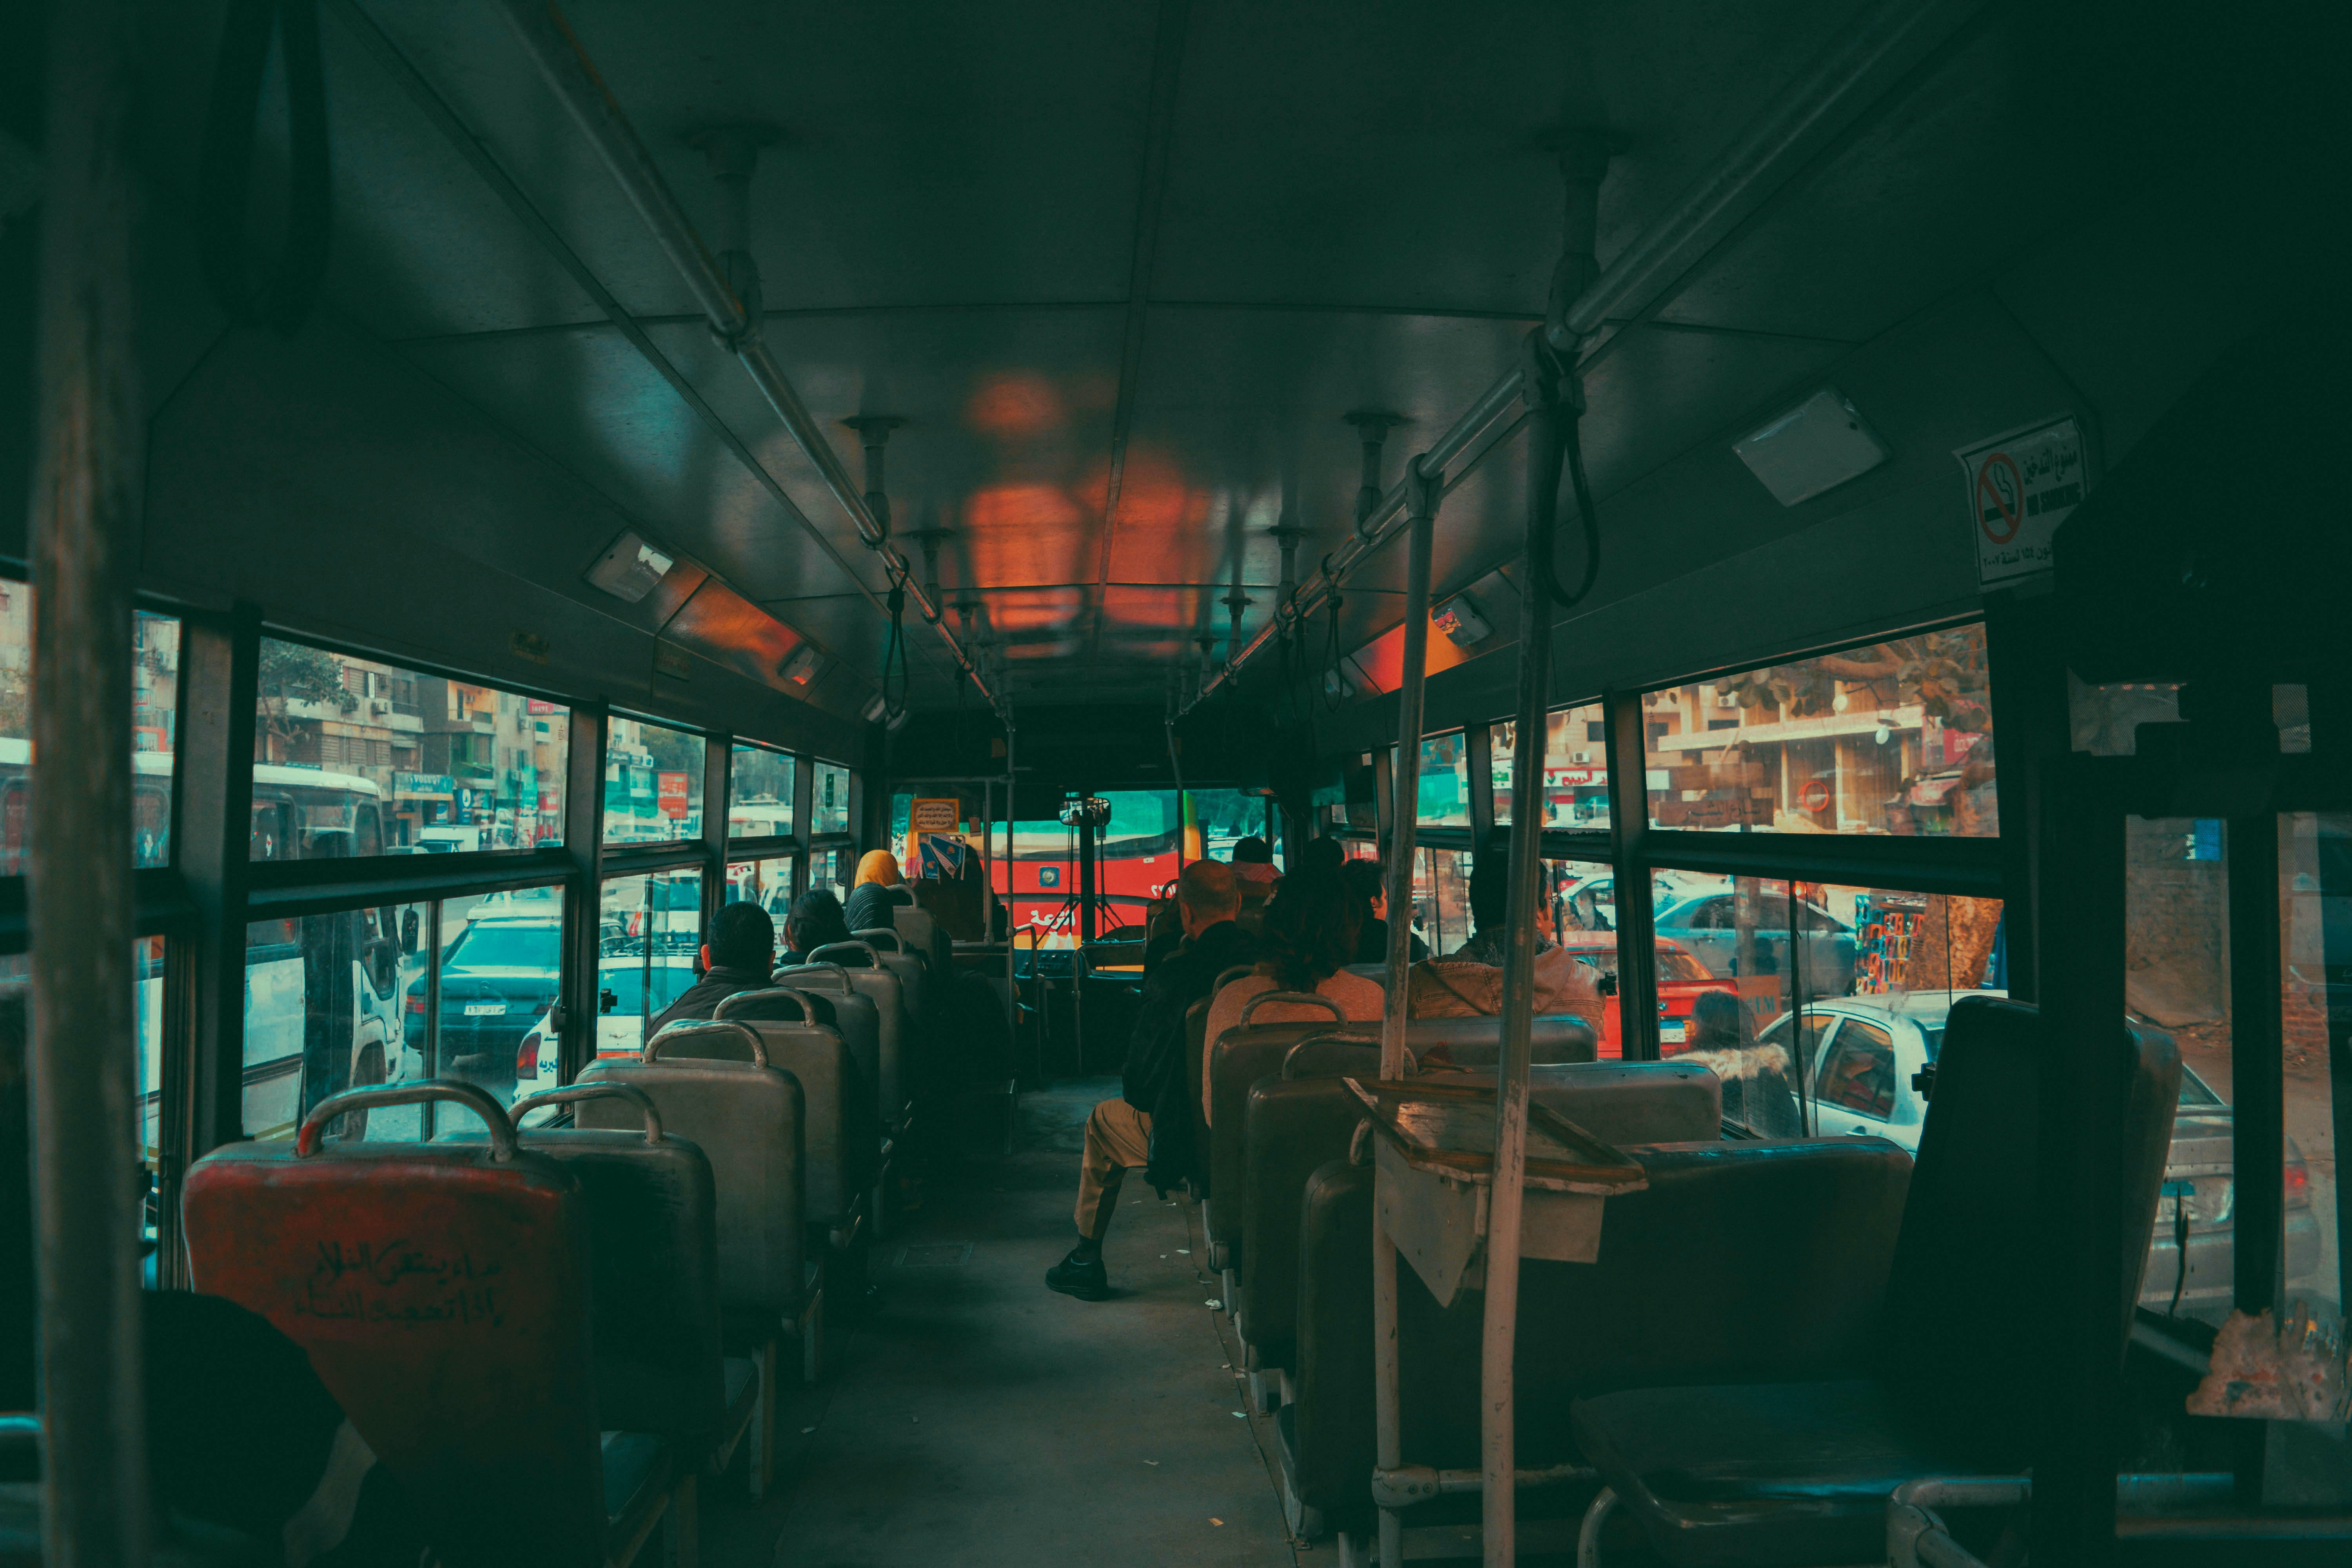 The interior of an old bus in the morning in Shobra